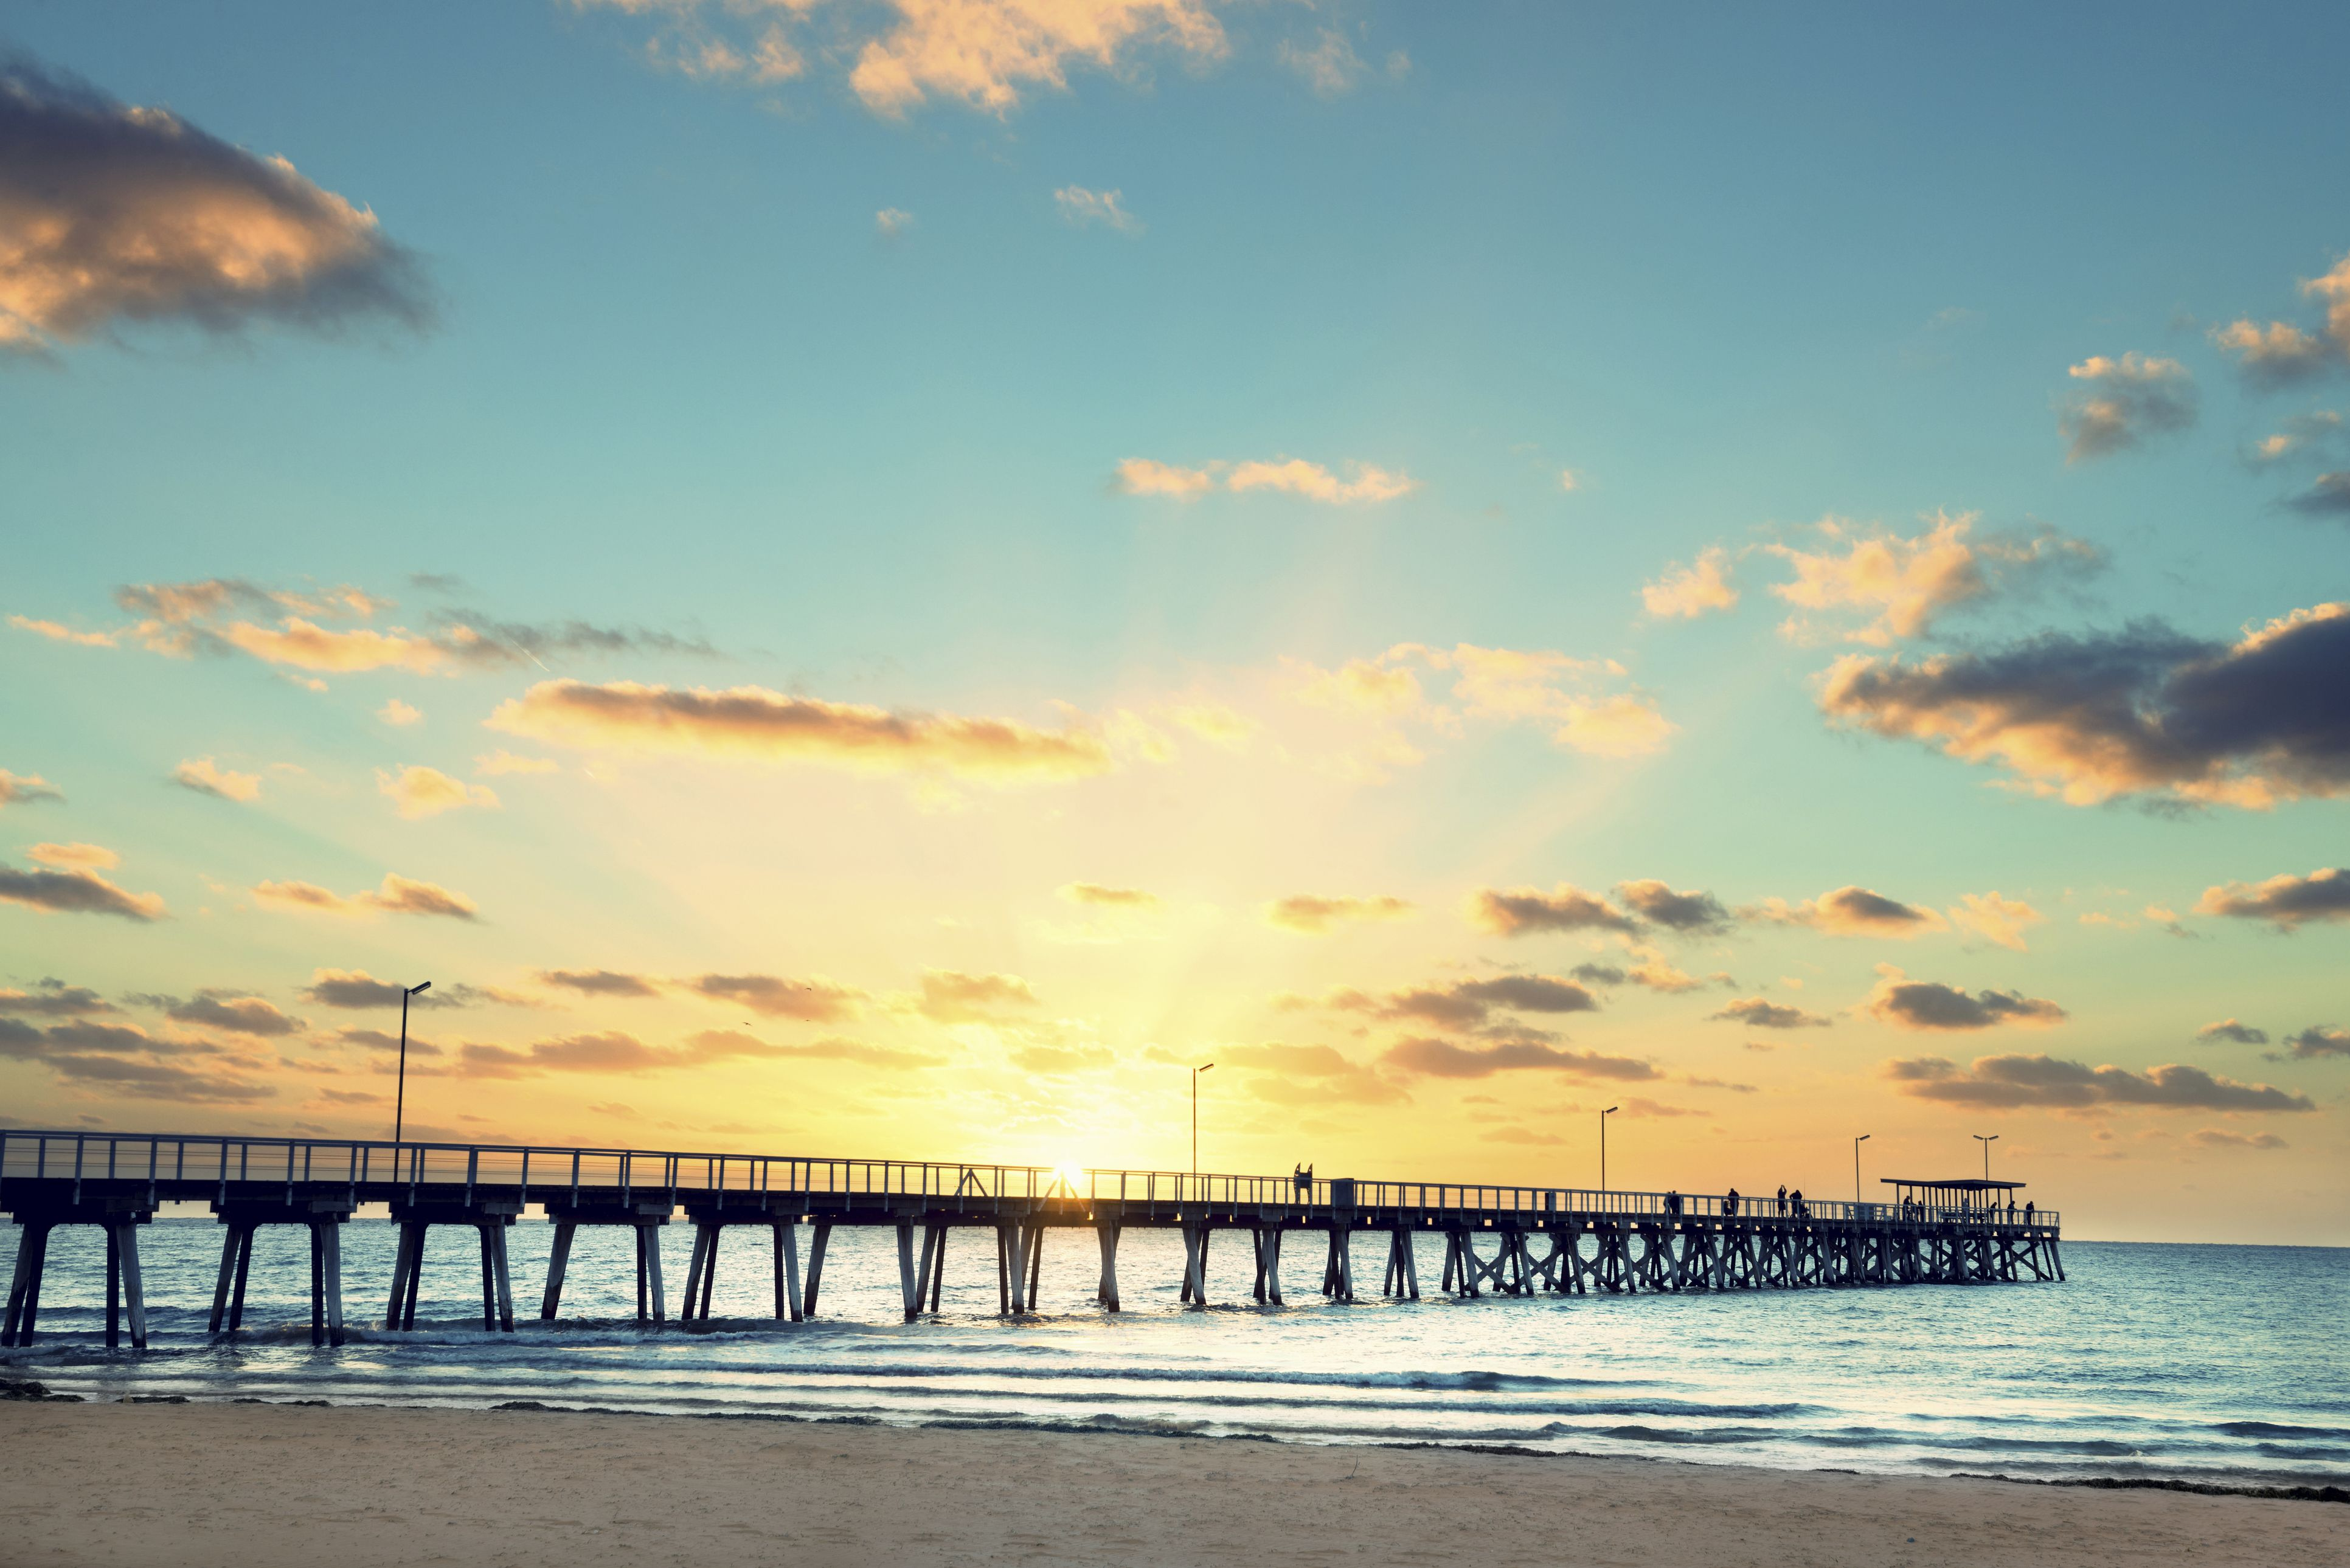 Beyond the beaches South Australia boasts myriad attractions